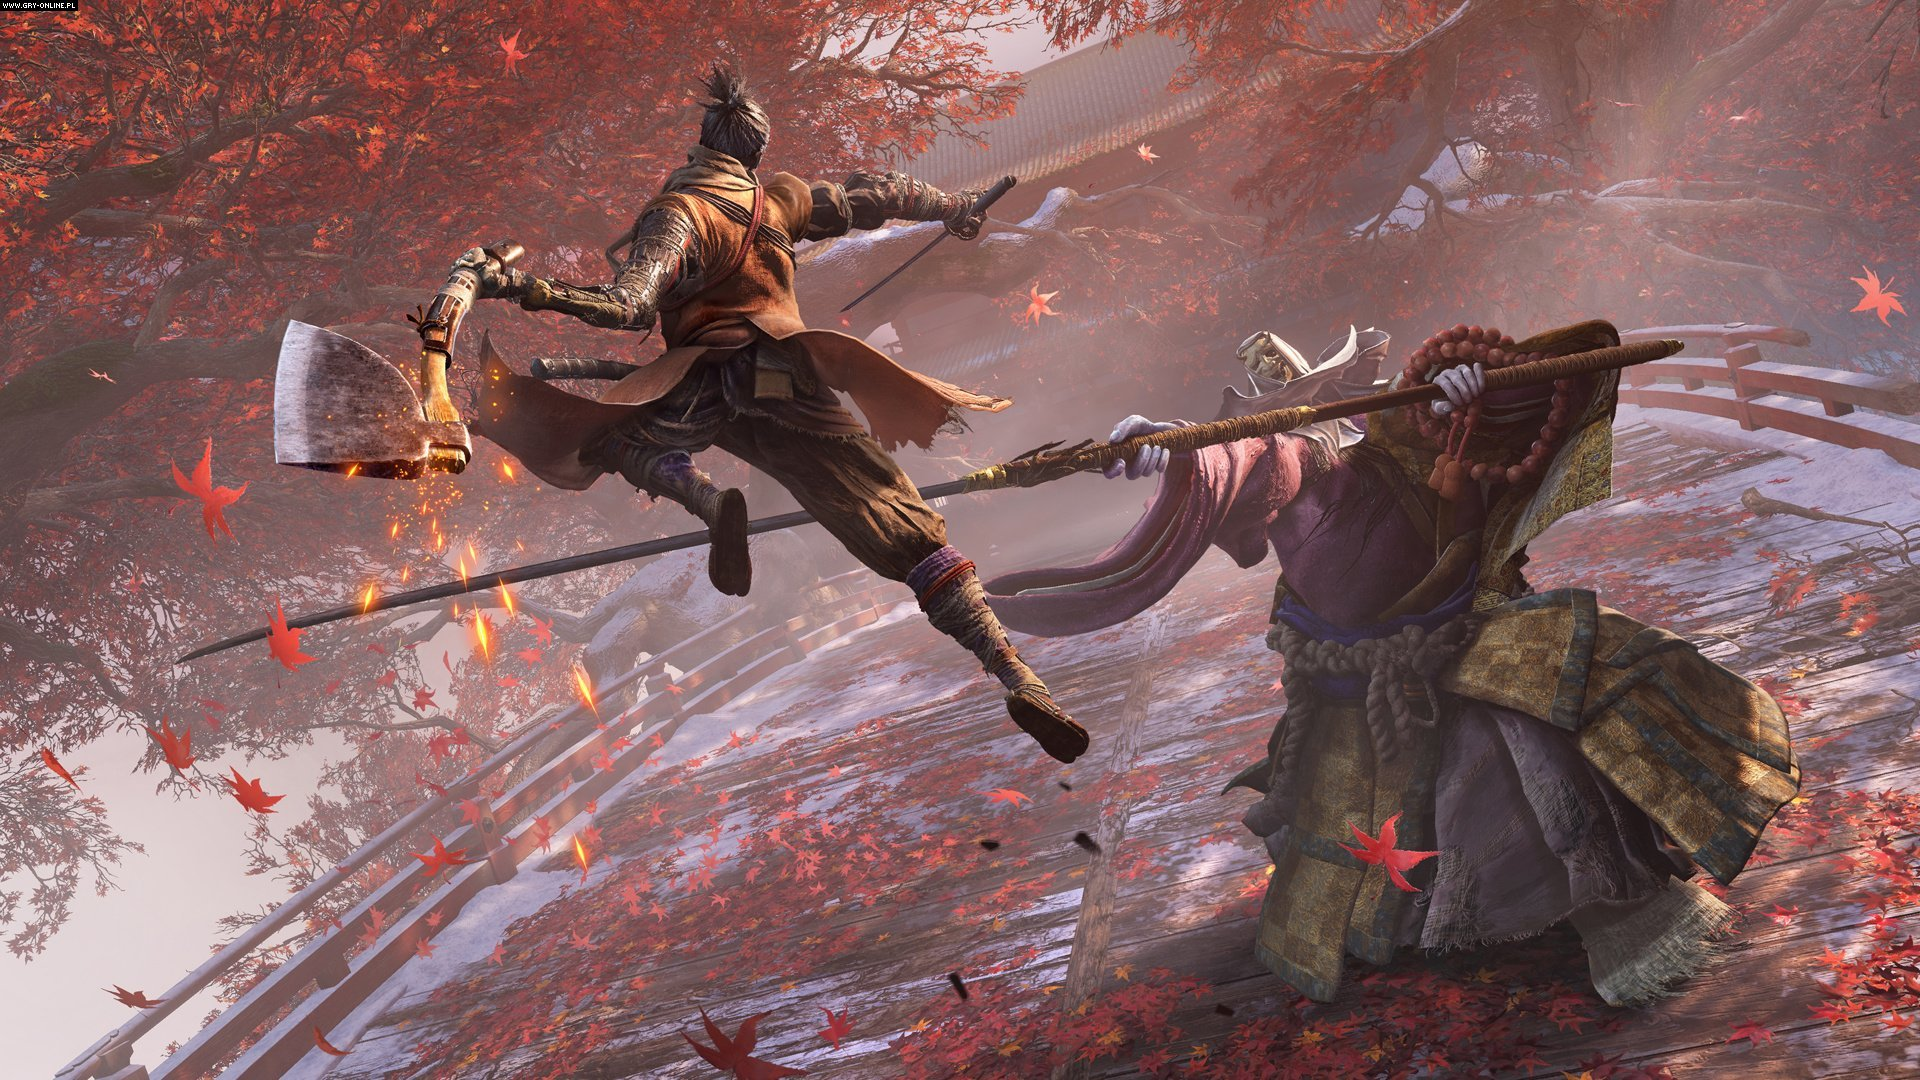 Sekiro: Shadows Die Twice PC, PS4, XONE Games Image 15/29, FromSoftware, Activision Blizzard